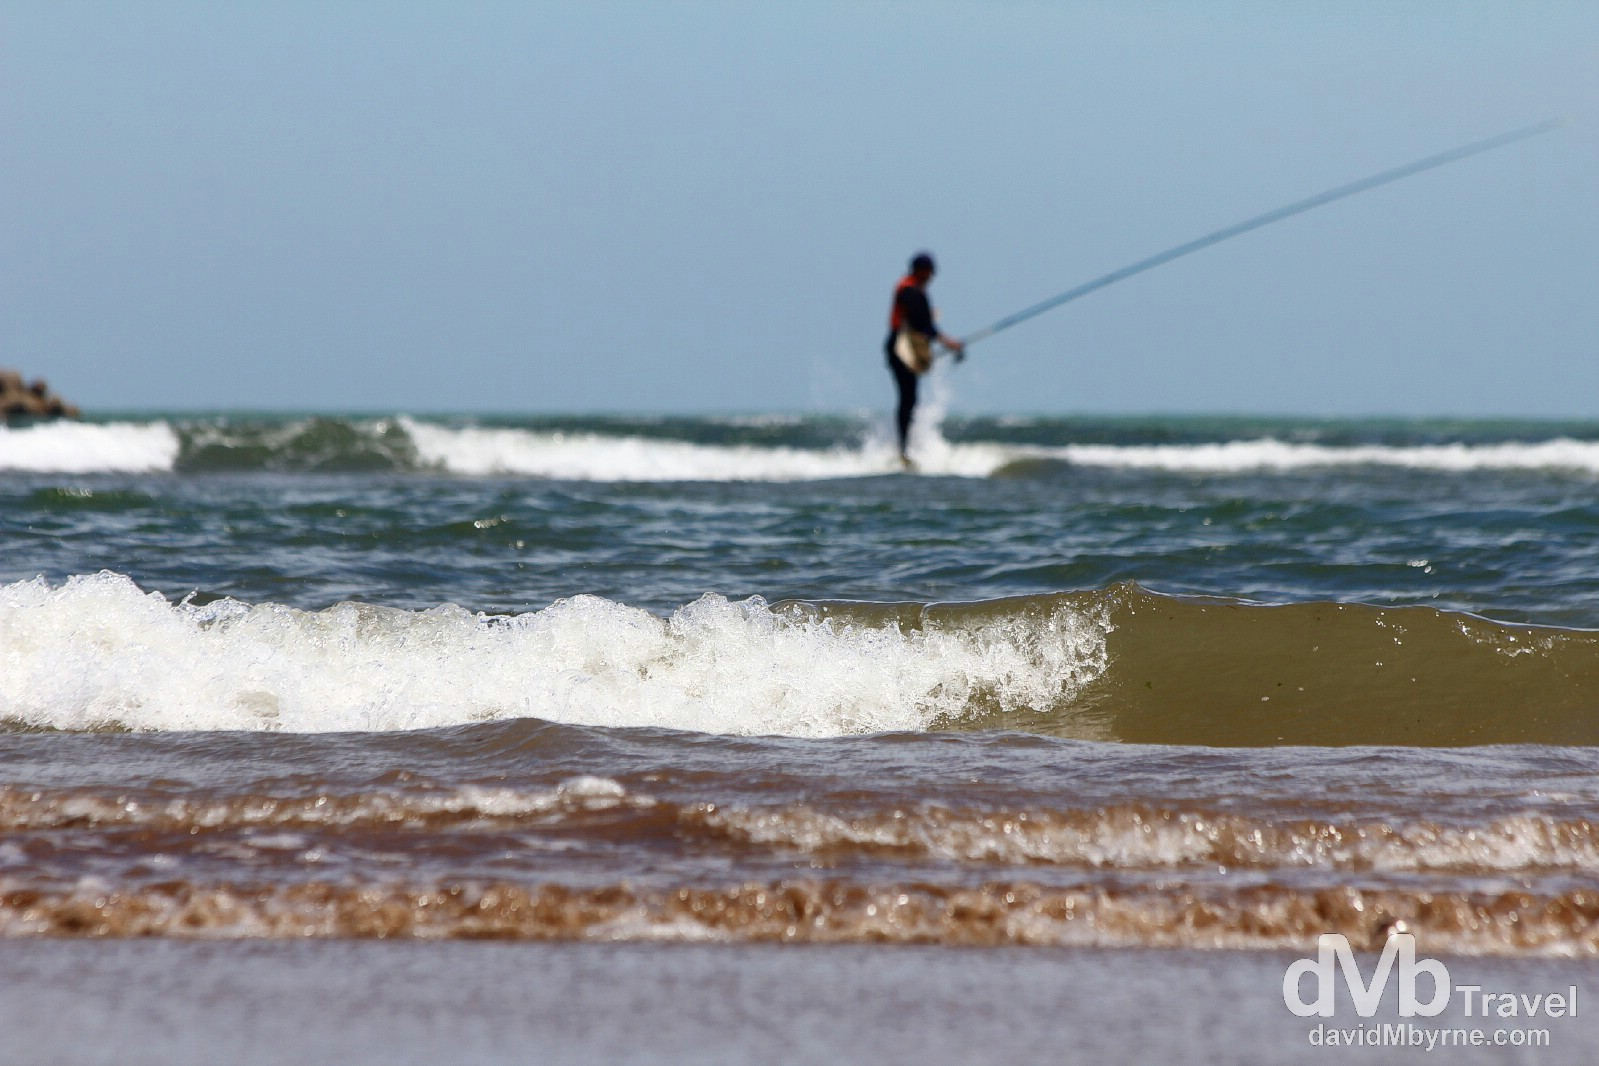 Fishing offshore of the beach in El Jadida, Morocco. May 1st, 2014.